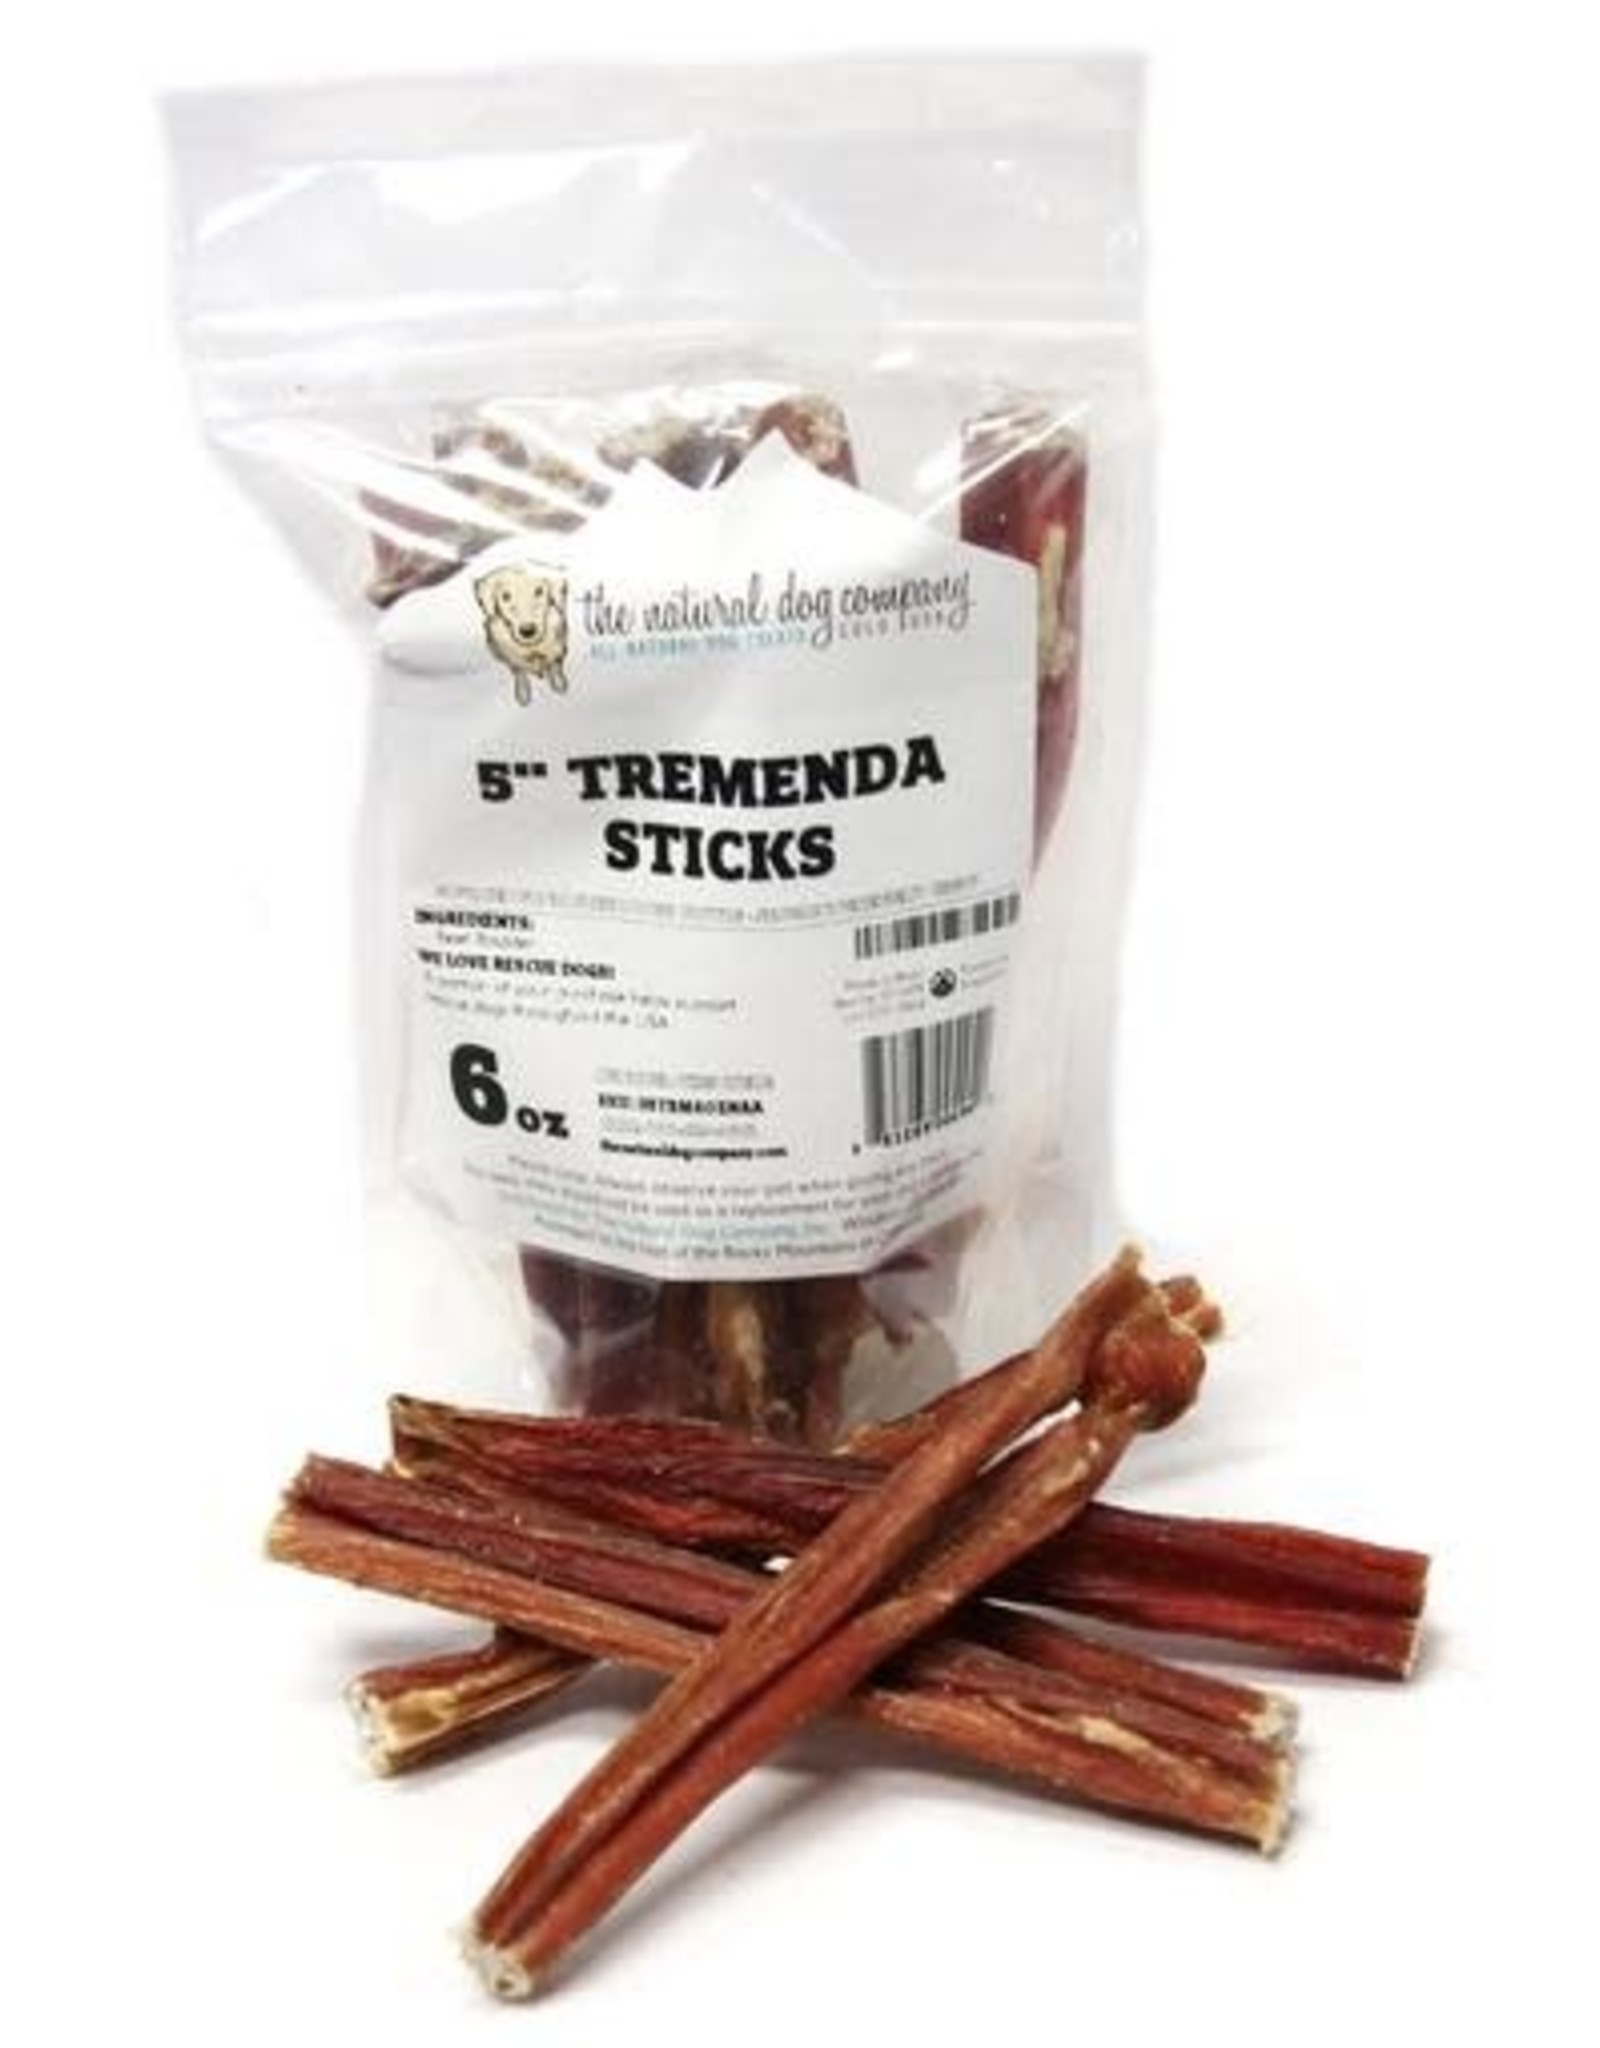 The Natural Dog Company THE NATURAL DOG COMPANY TREMENDA STICKS 6OZ BAG